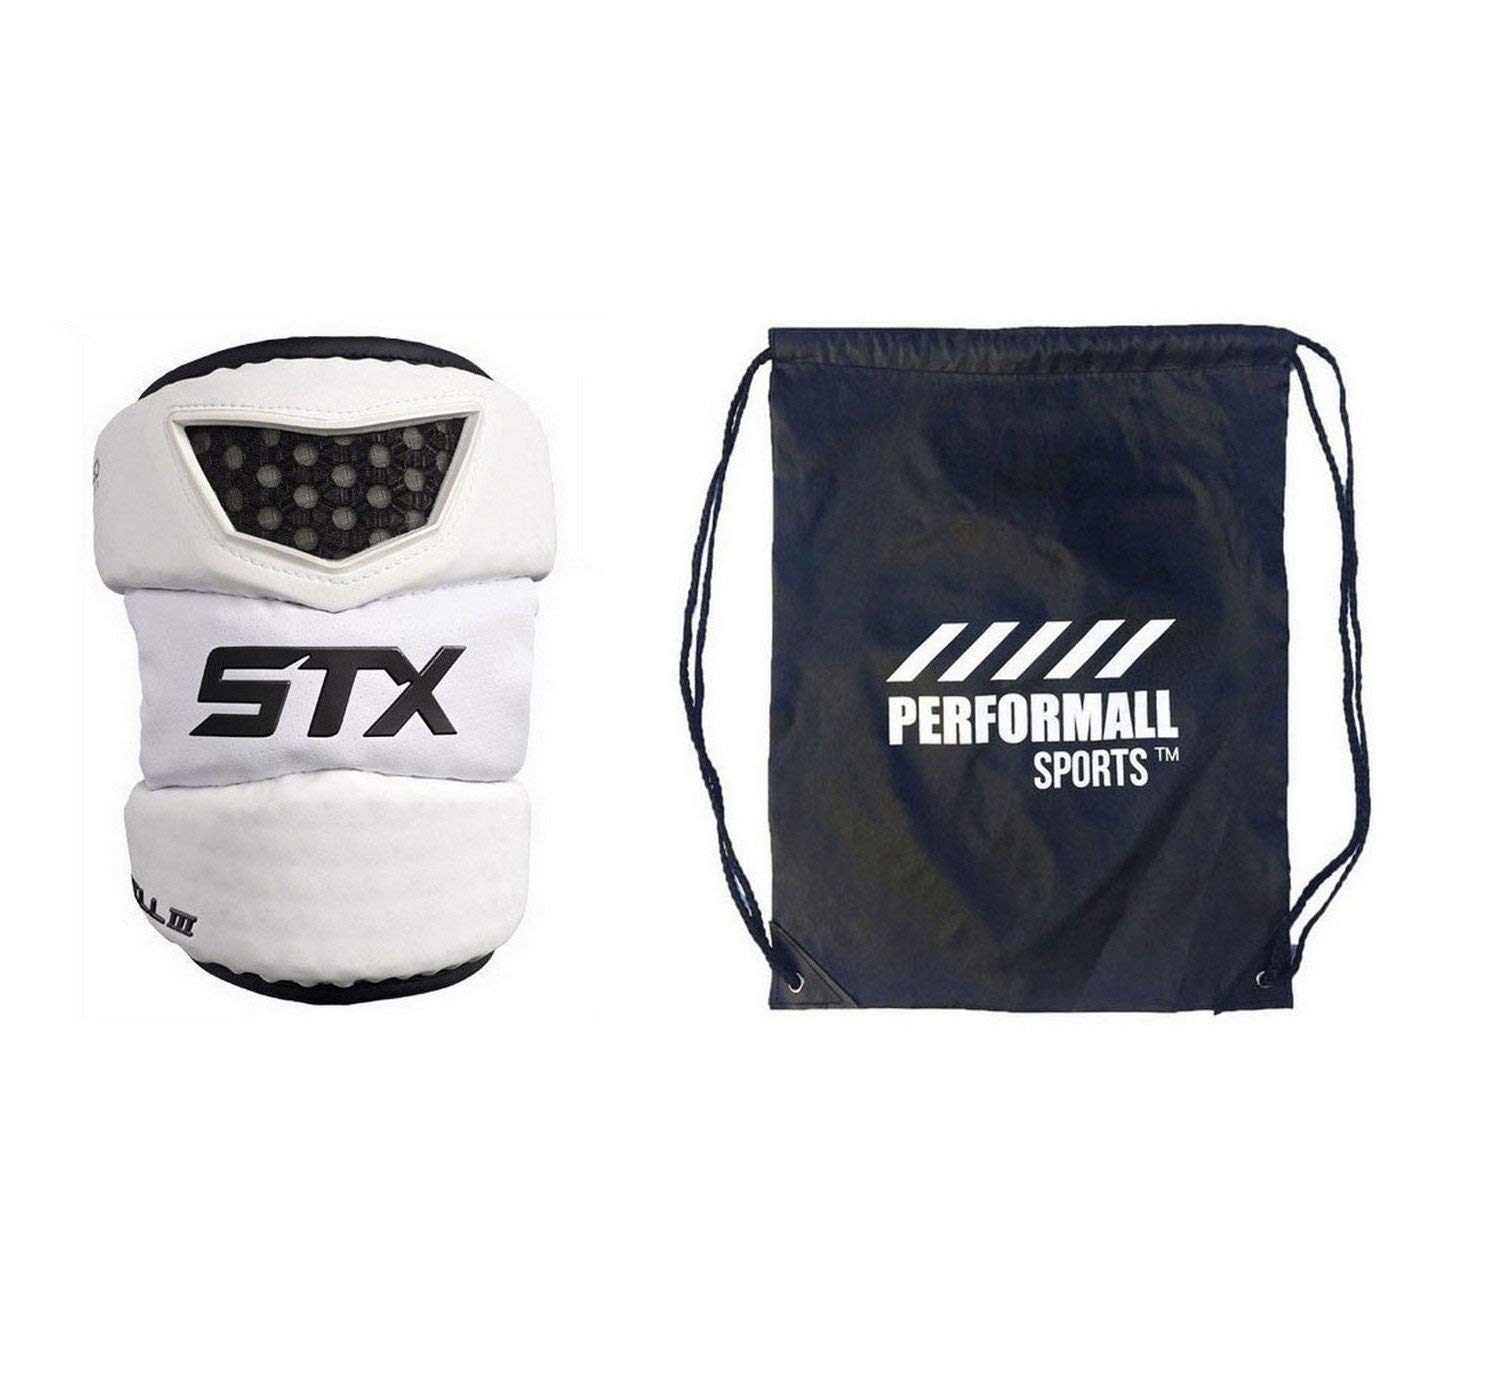 Get Quotations Stx Cell 3 Lacrosse Elbow Pad Bundle With 1 Performall Sports Bag